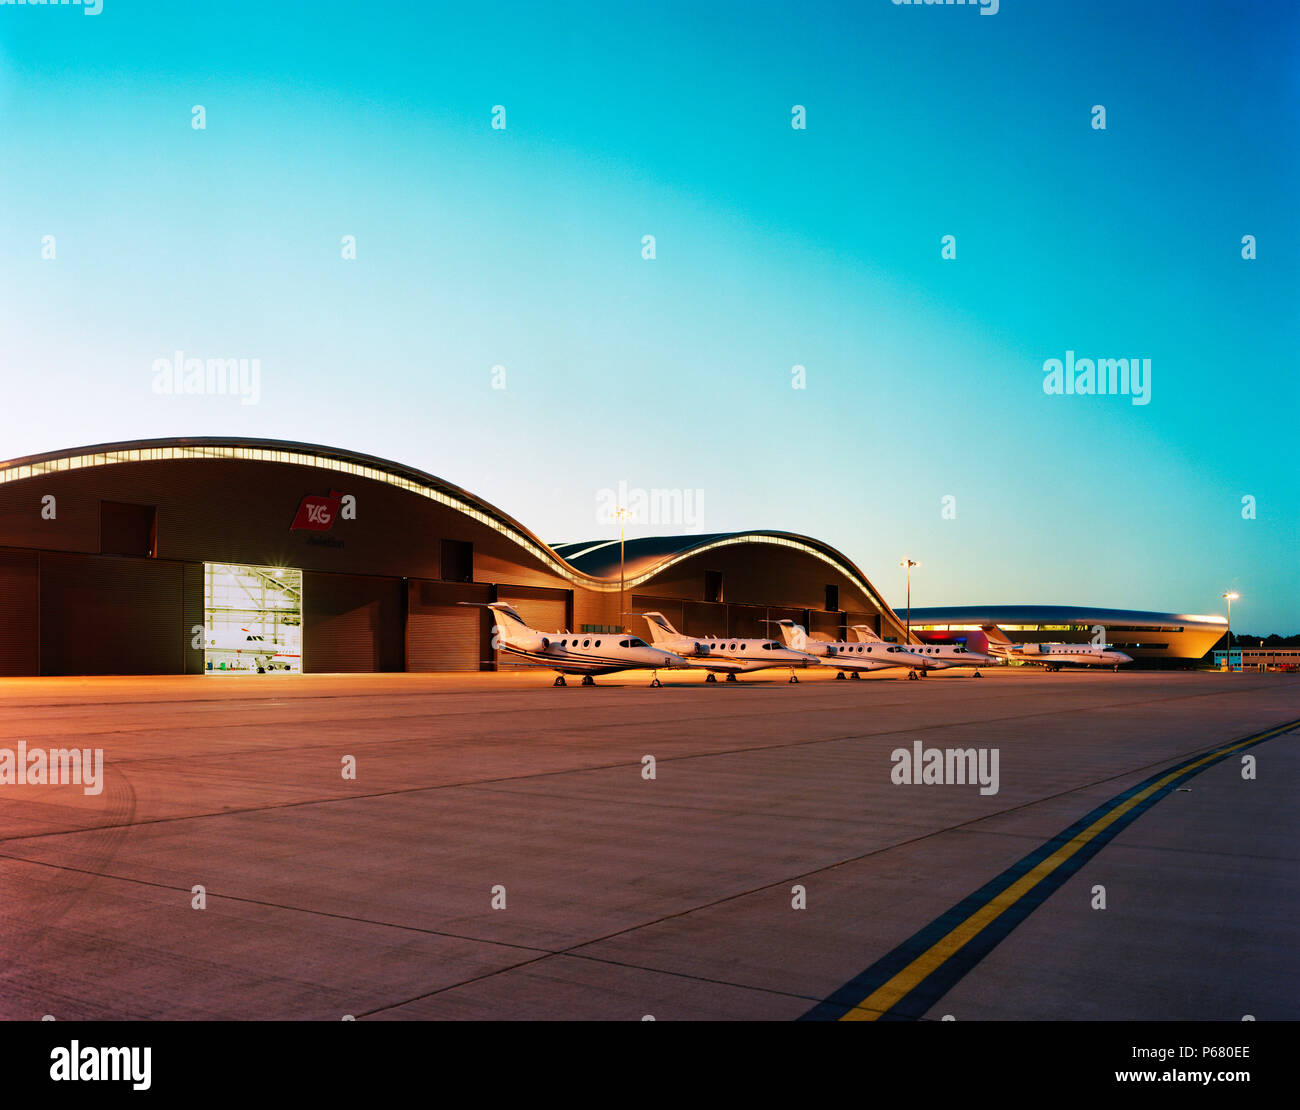 The tower of Farnborough airport and Hangars with parked airoplane. Designed by 3d reid architects. - Stock Image